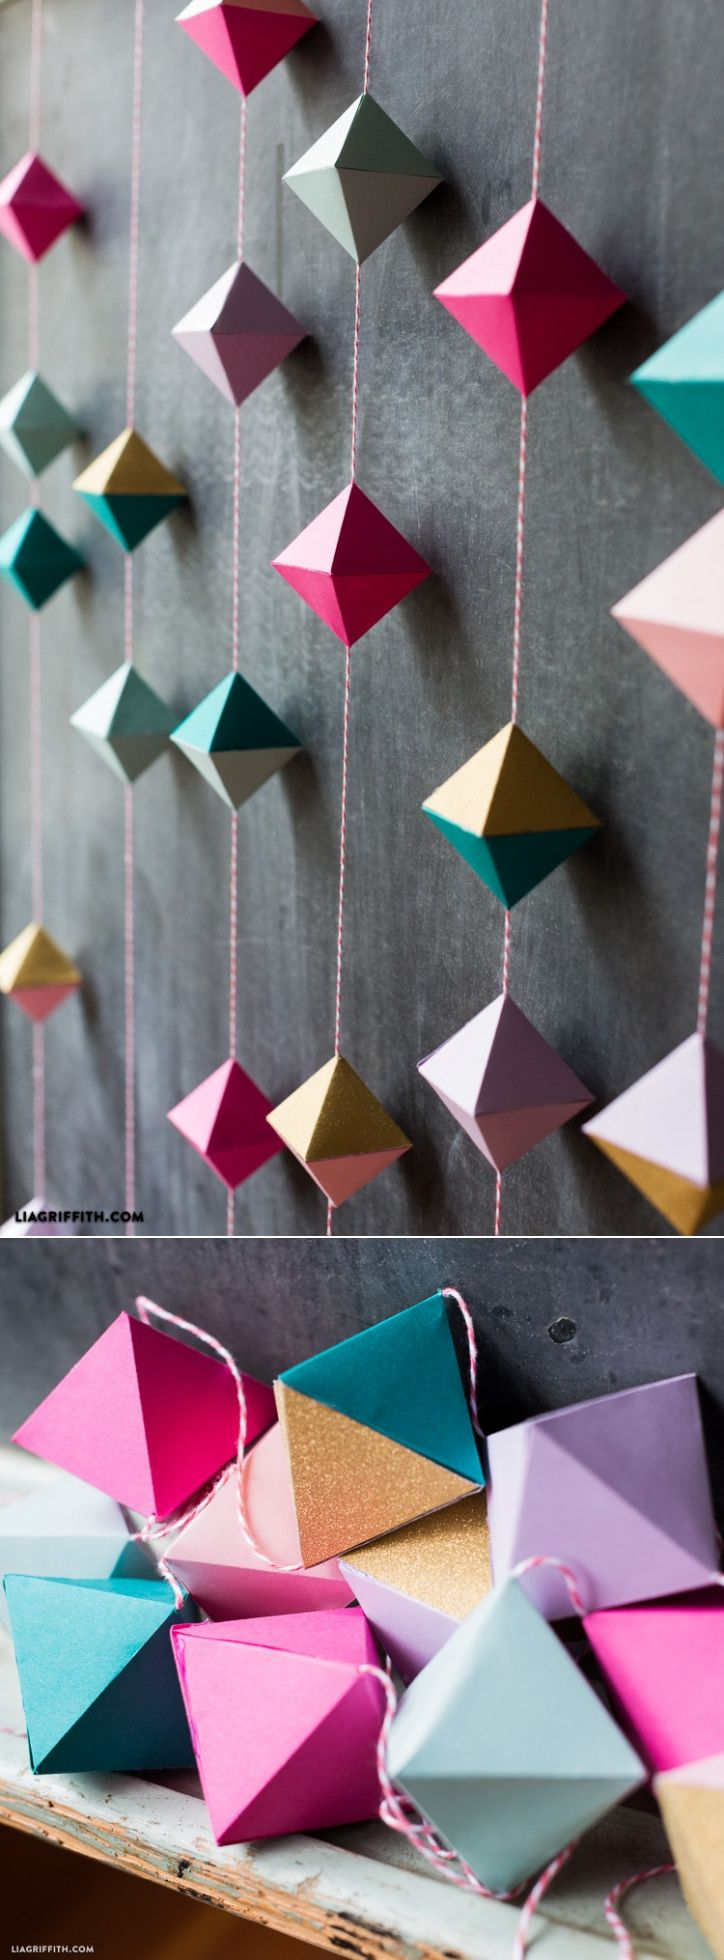 25 best ideas about party garland on pinterest diy for Art design ideas for paper